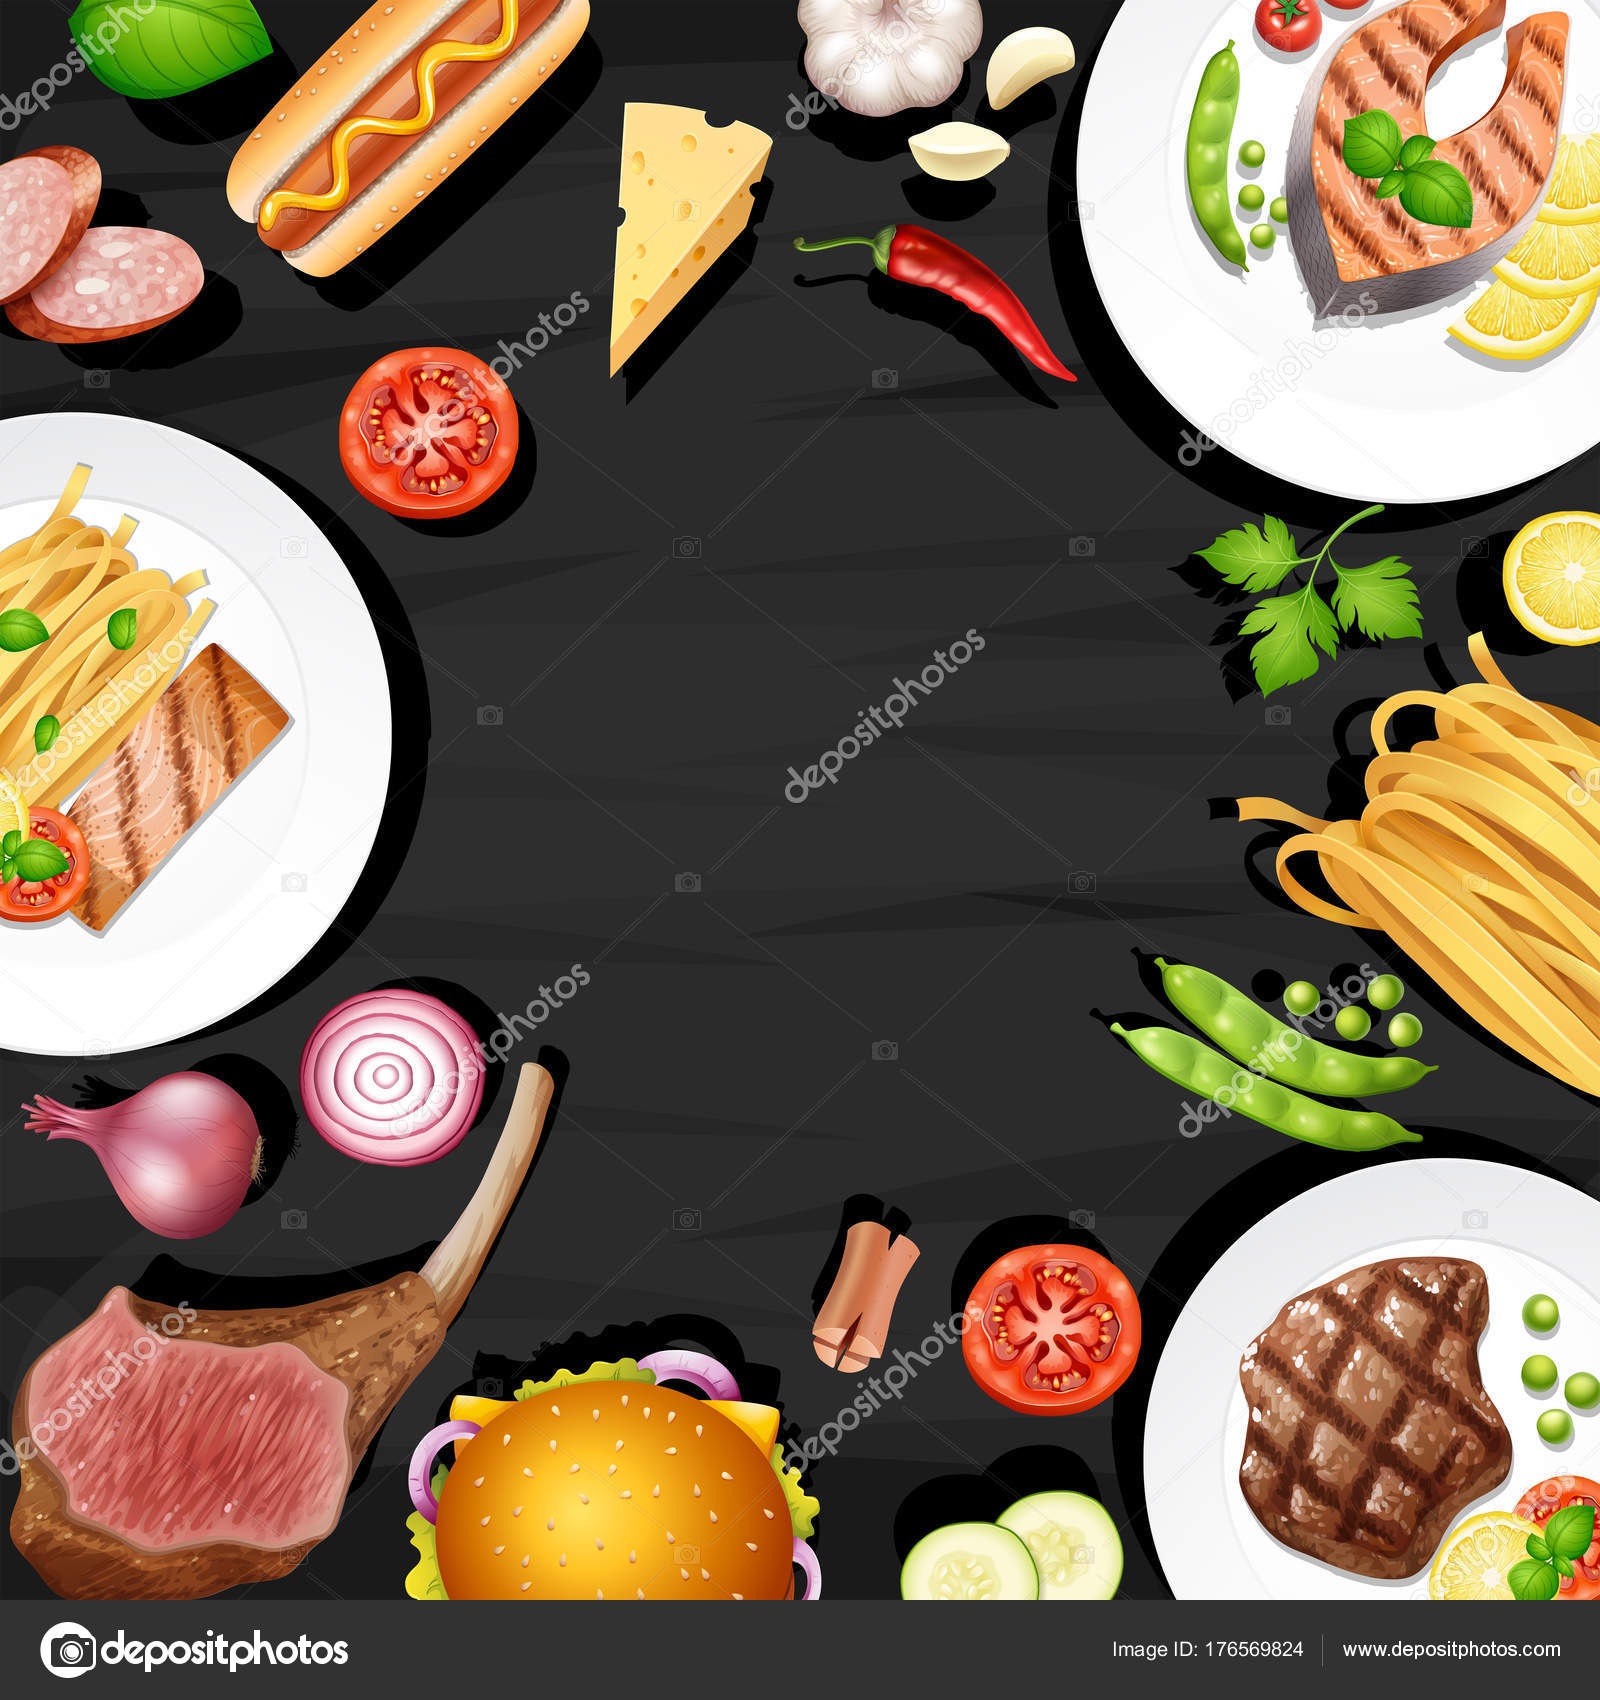 border design with different kinds of food stock vector brgfx